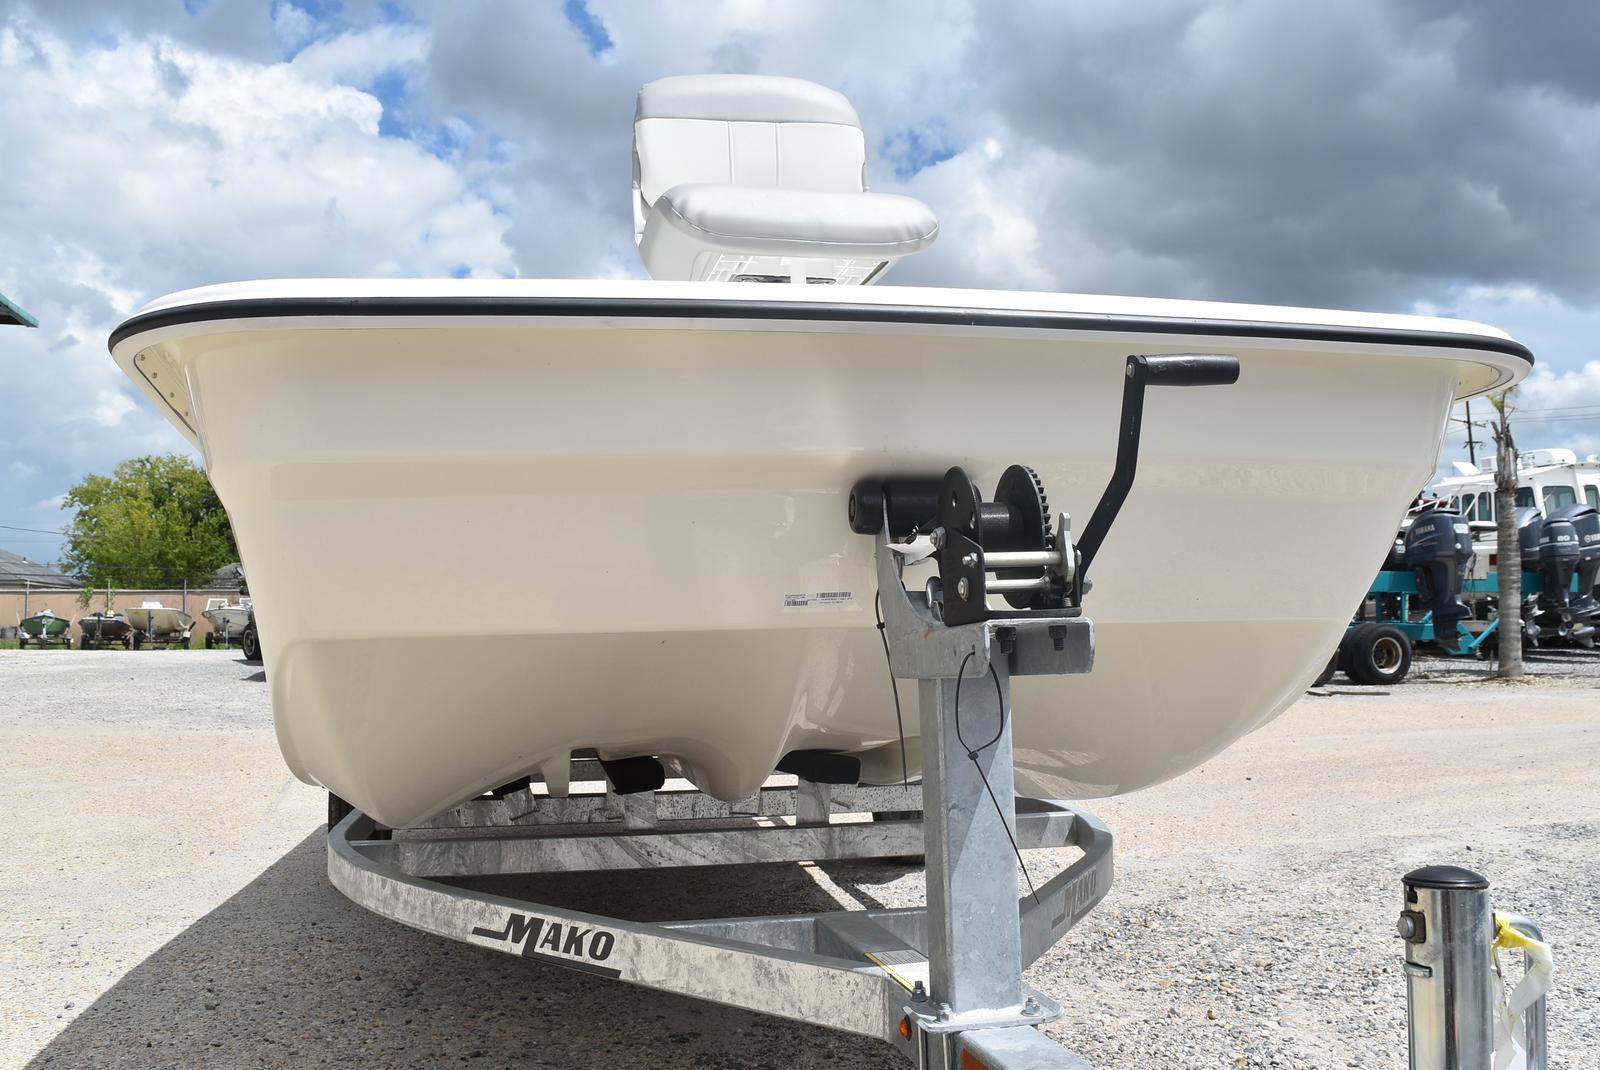 2020 Mako boat for sale, model of the boat is Pro Skiff 17, 75 ELPT & Image # 340 of 702